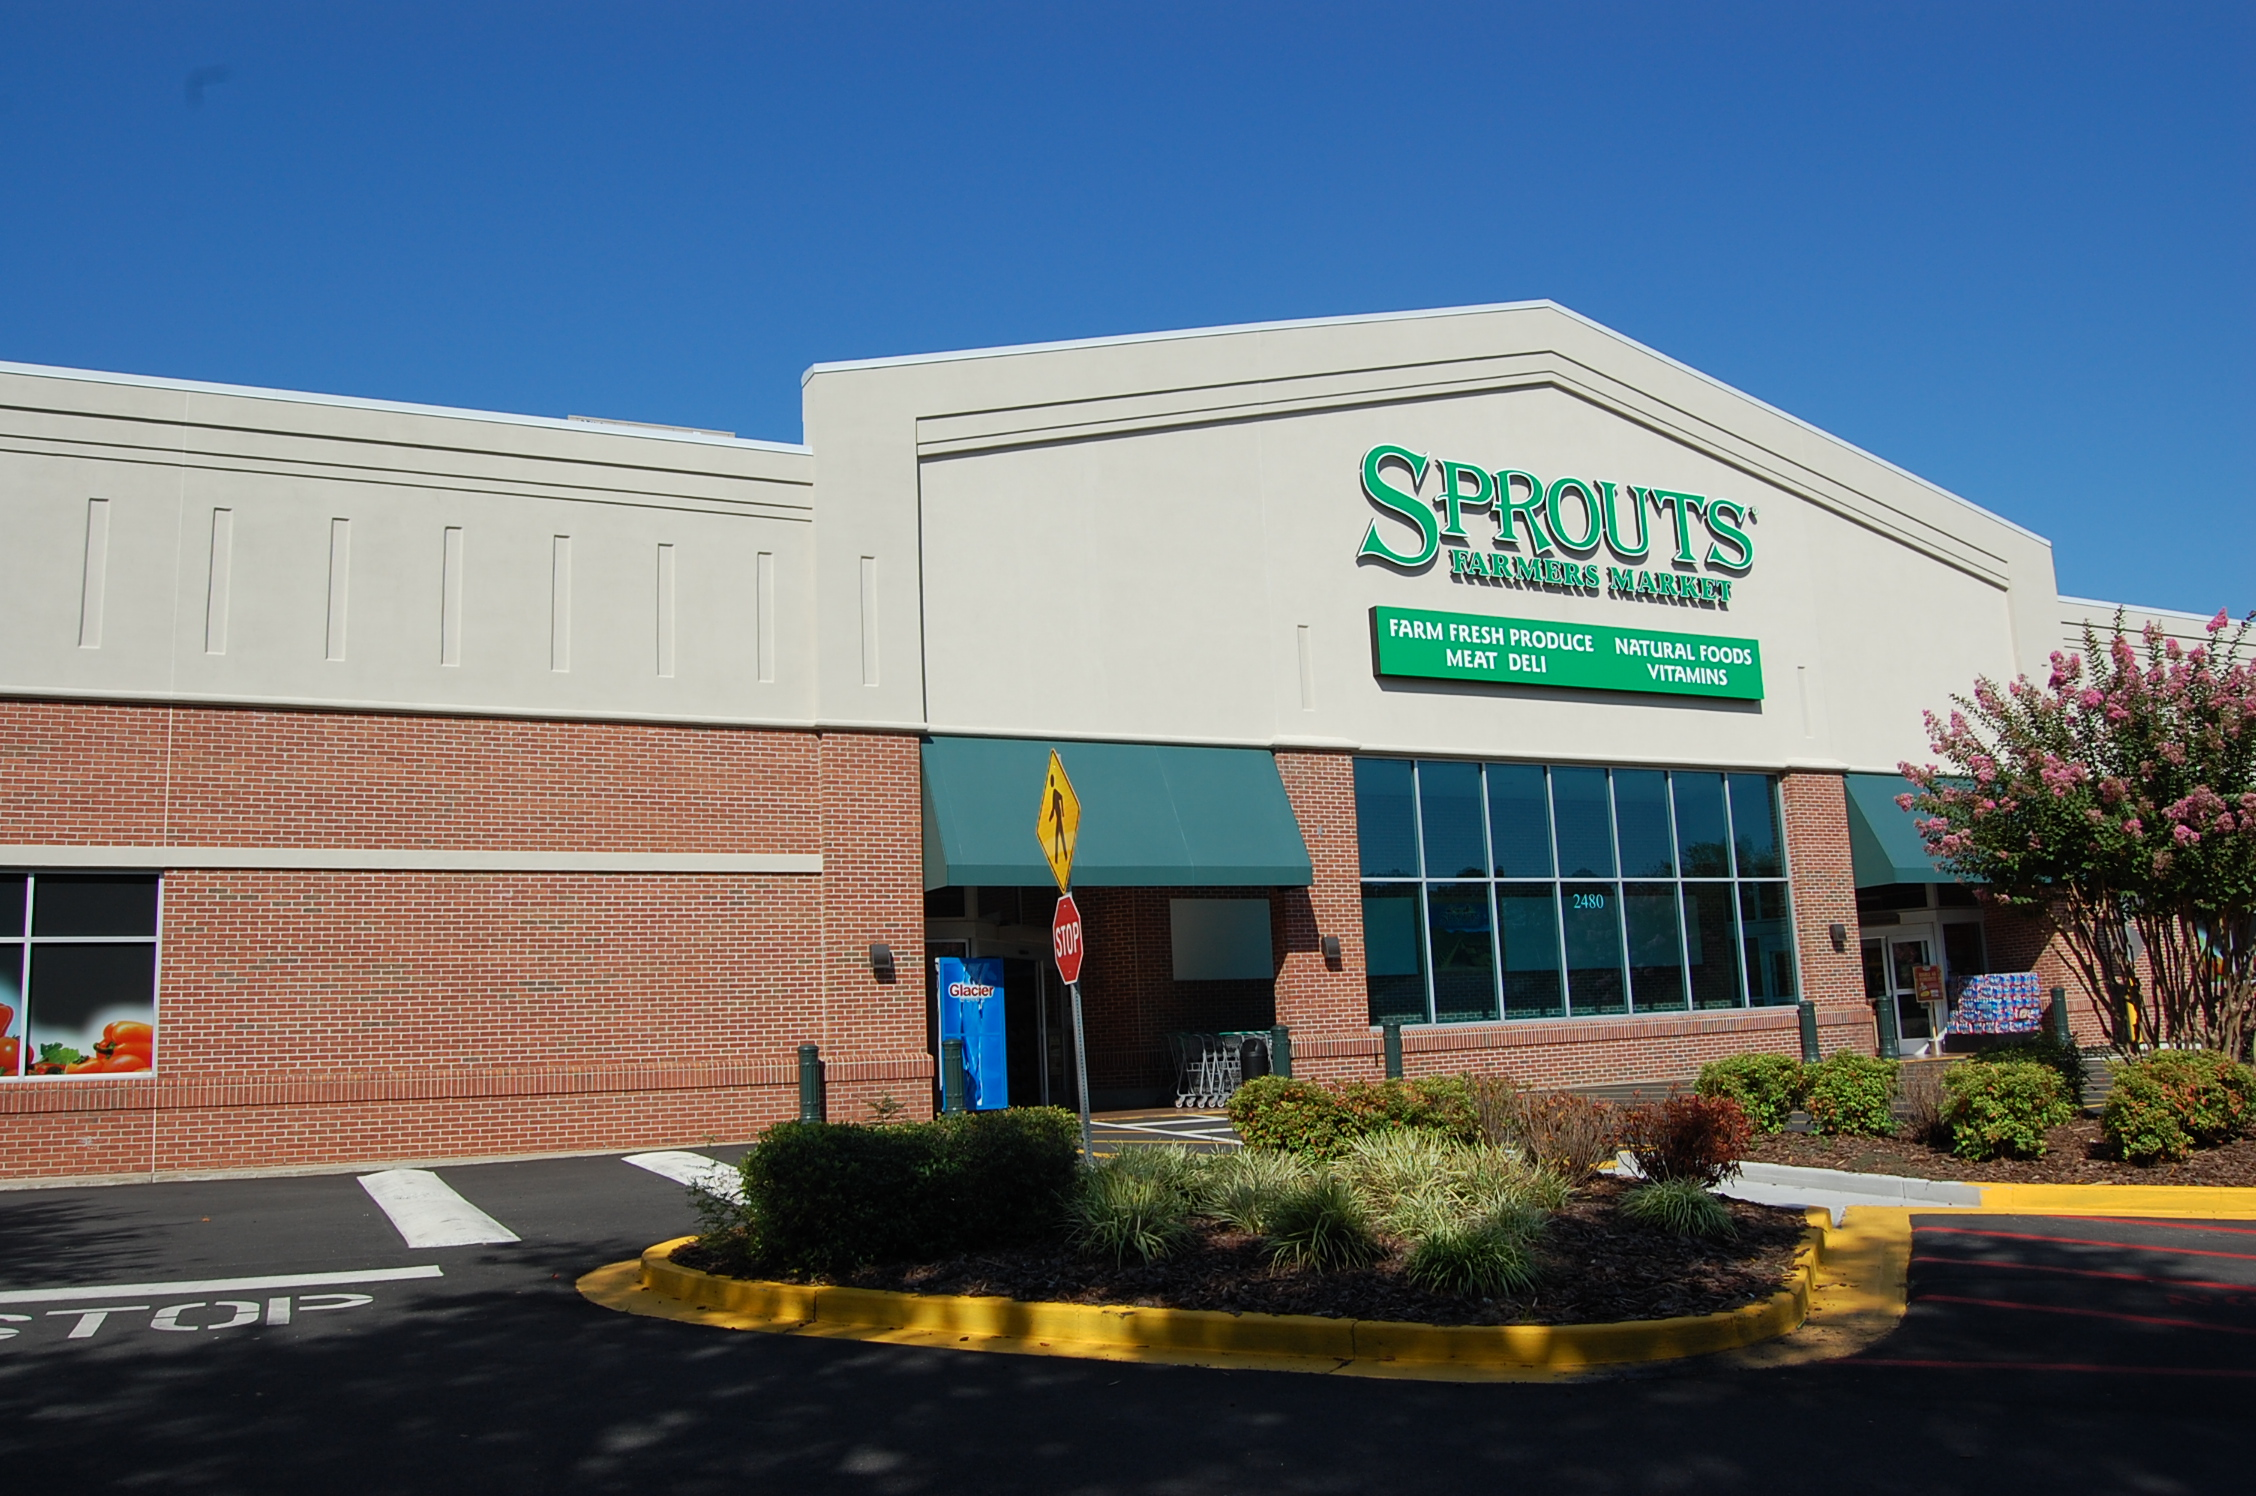 Sprouts (09.21.14).JPG